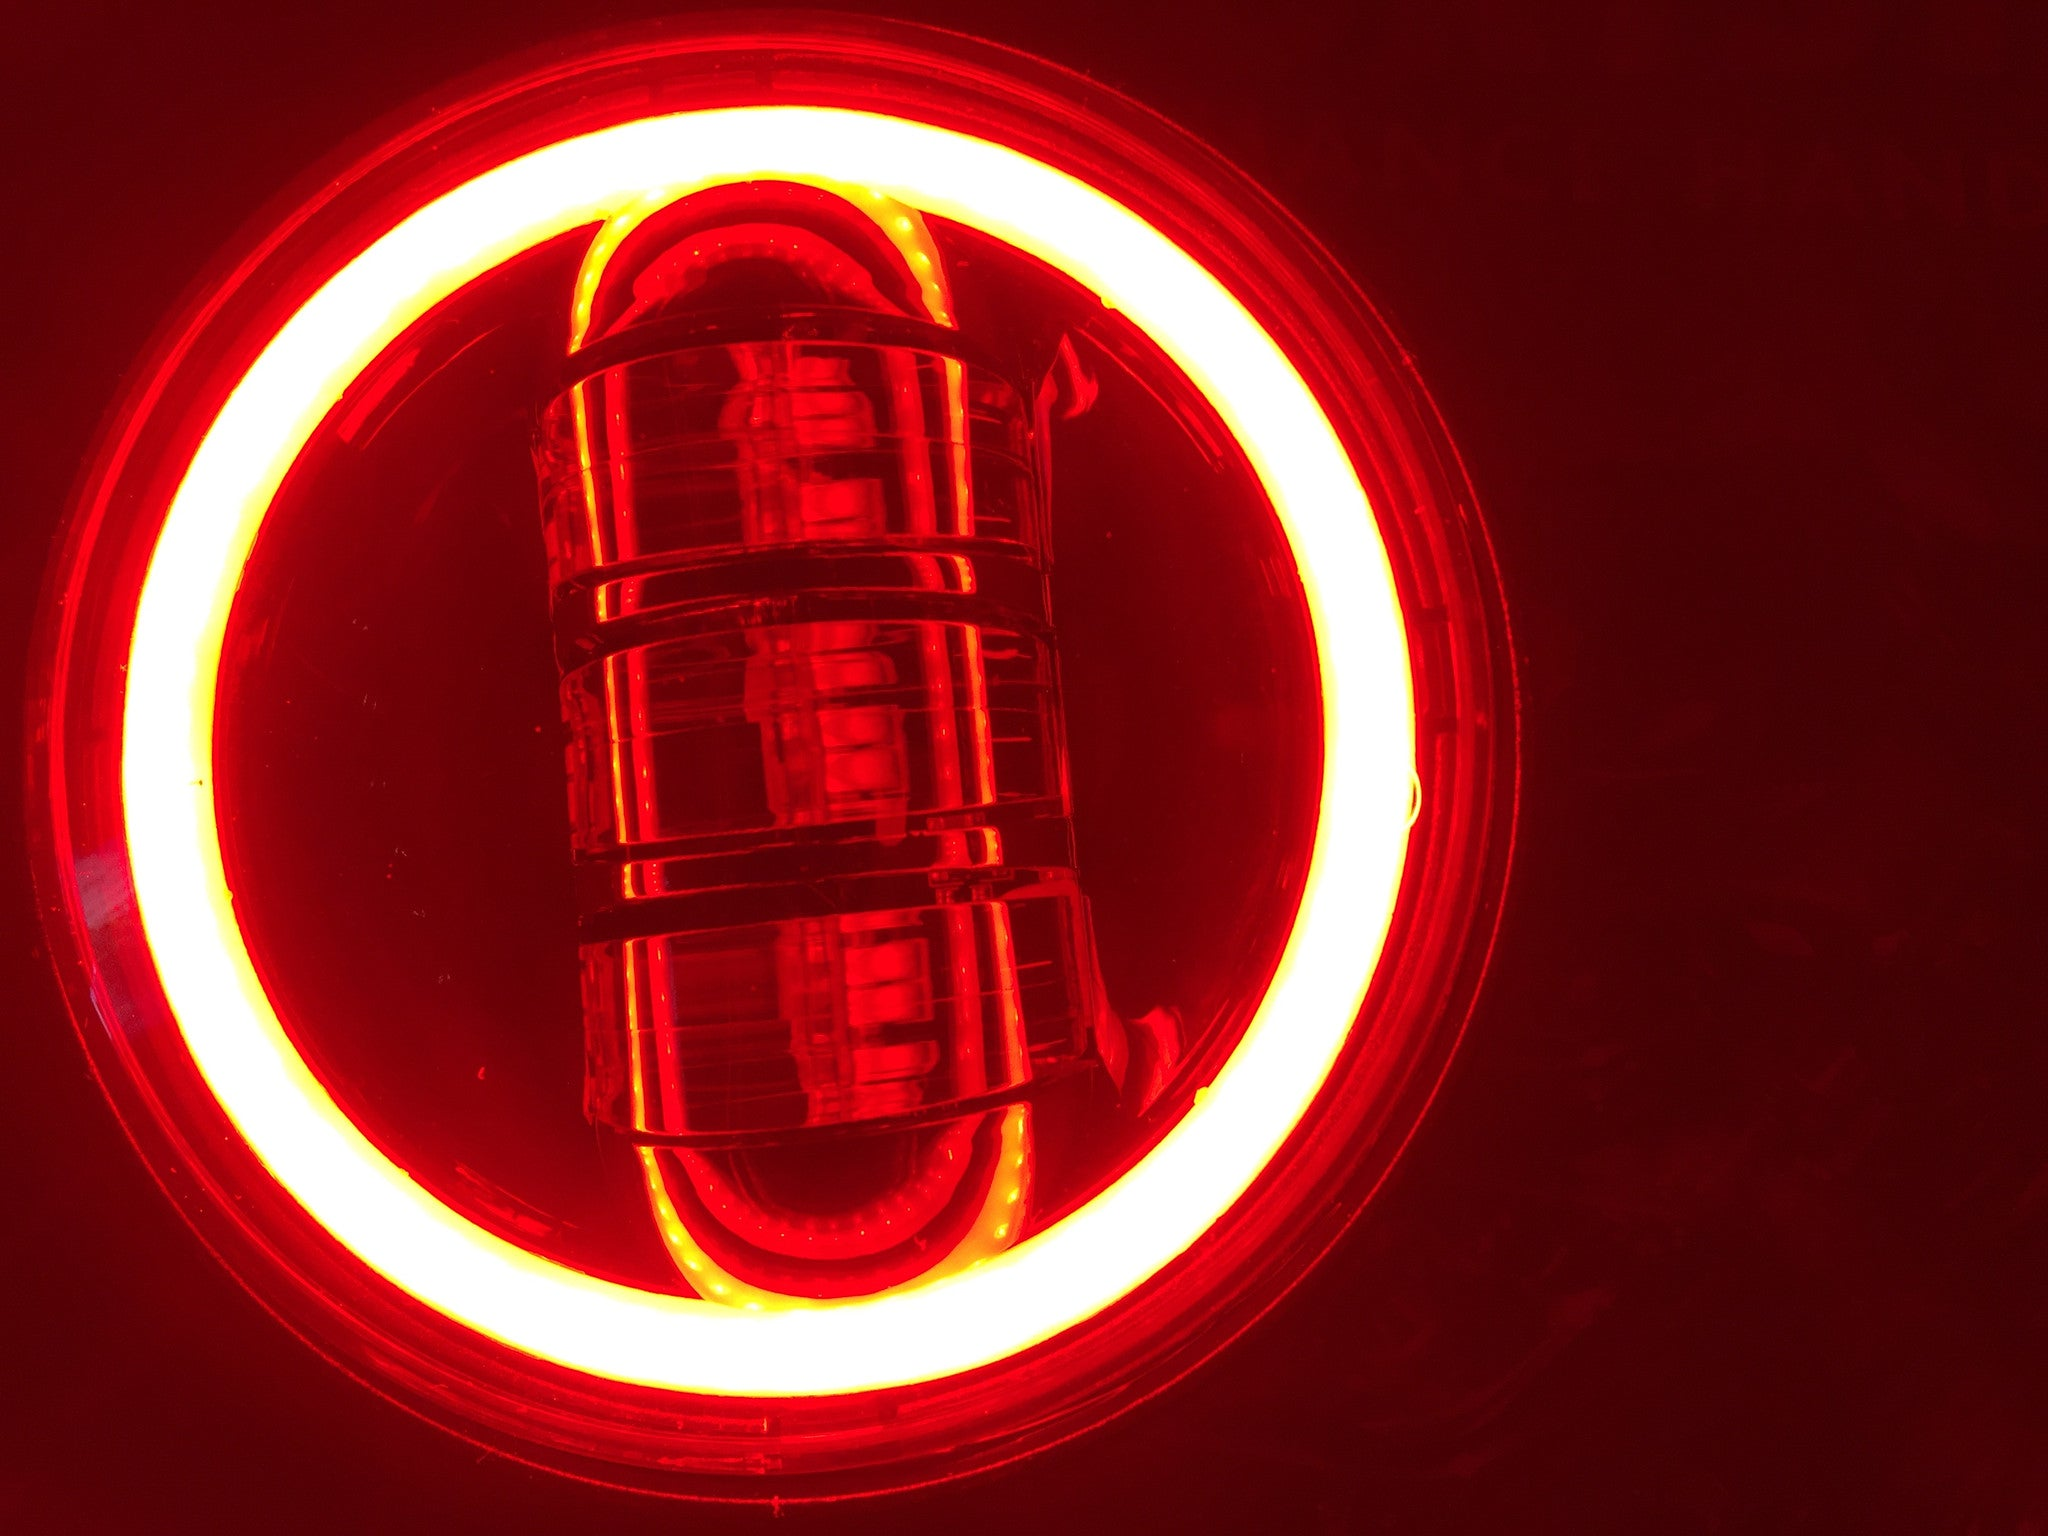 motorcycles led on s lighting jonah tag inside lights head motorcycle have nanabread